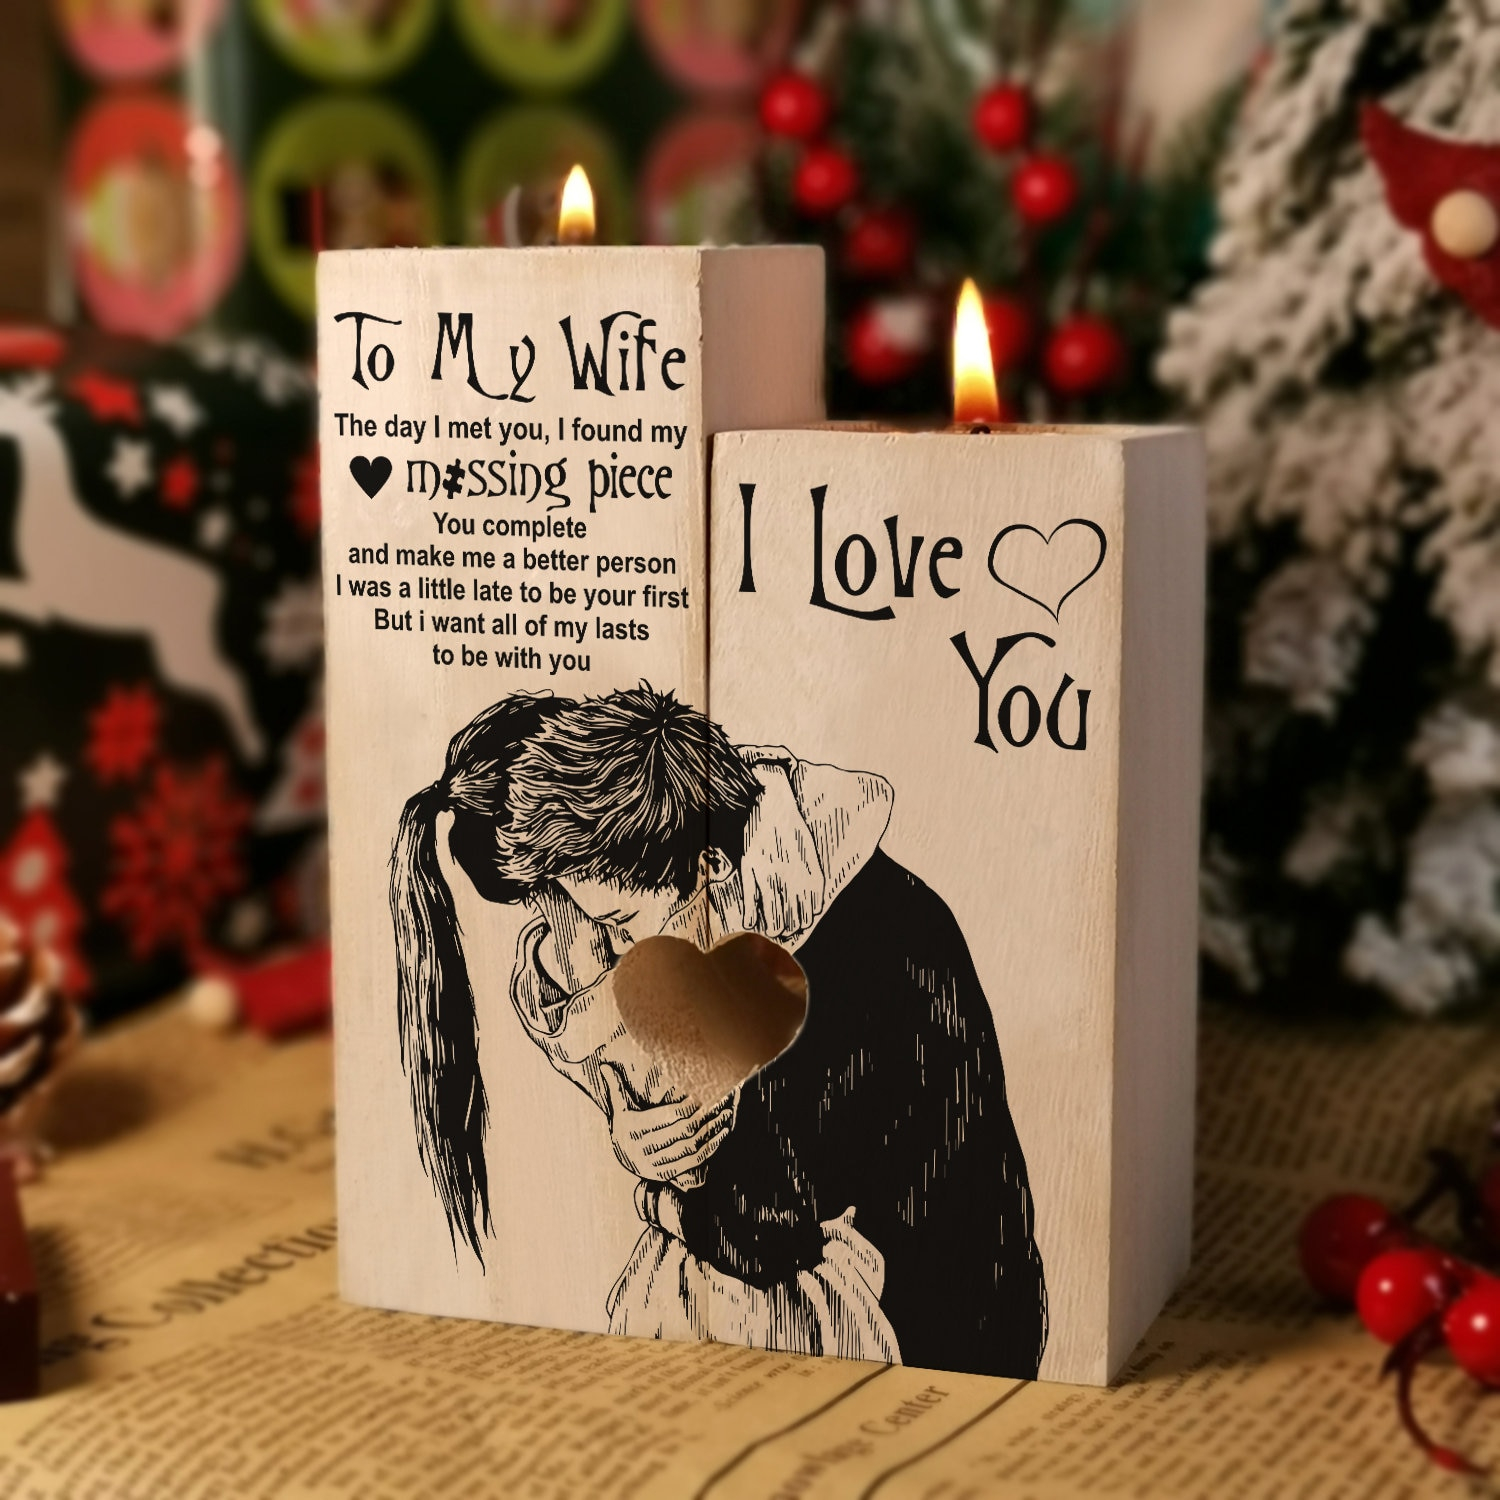 From Husband To Wife Candle Holder Gift I Love You For Xmas Valentine Mother's Day Birthday Wedding Anniversary Christmas